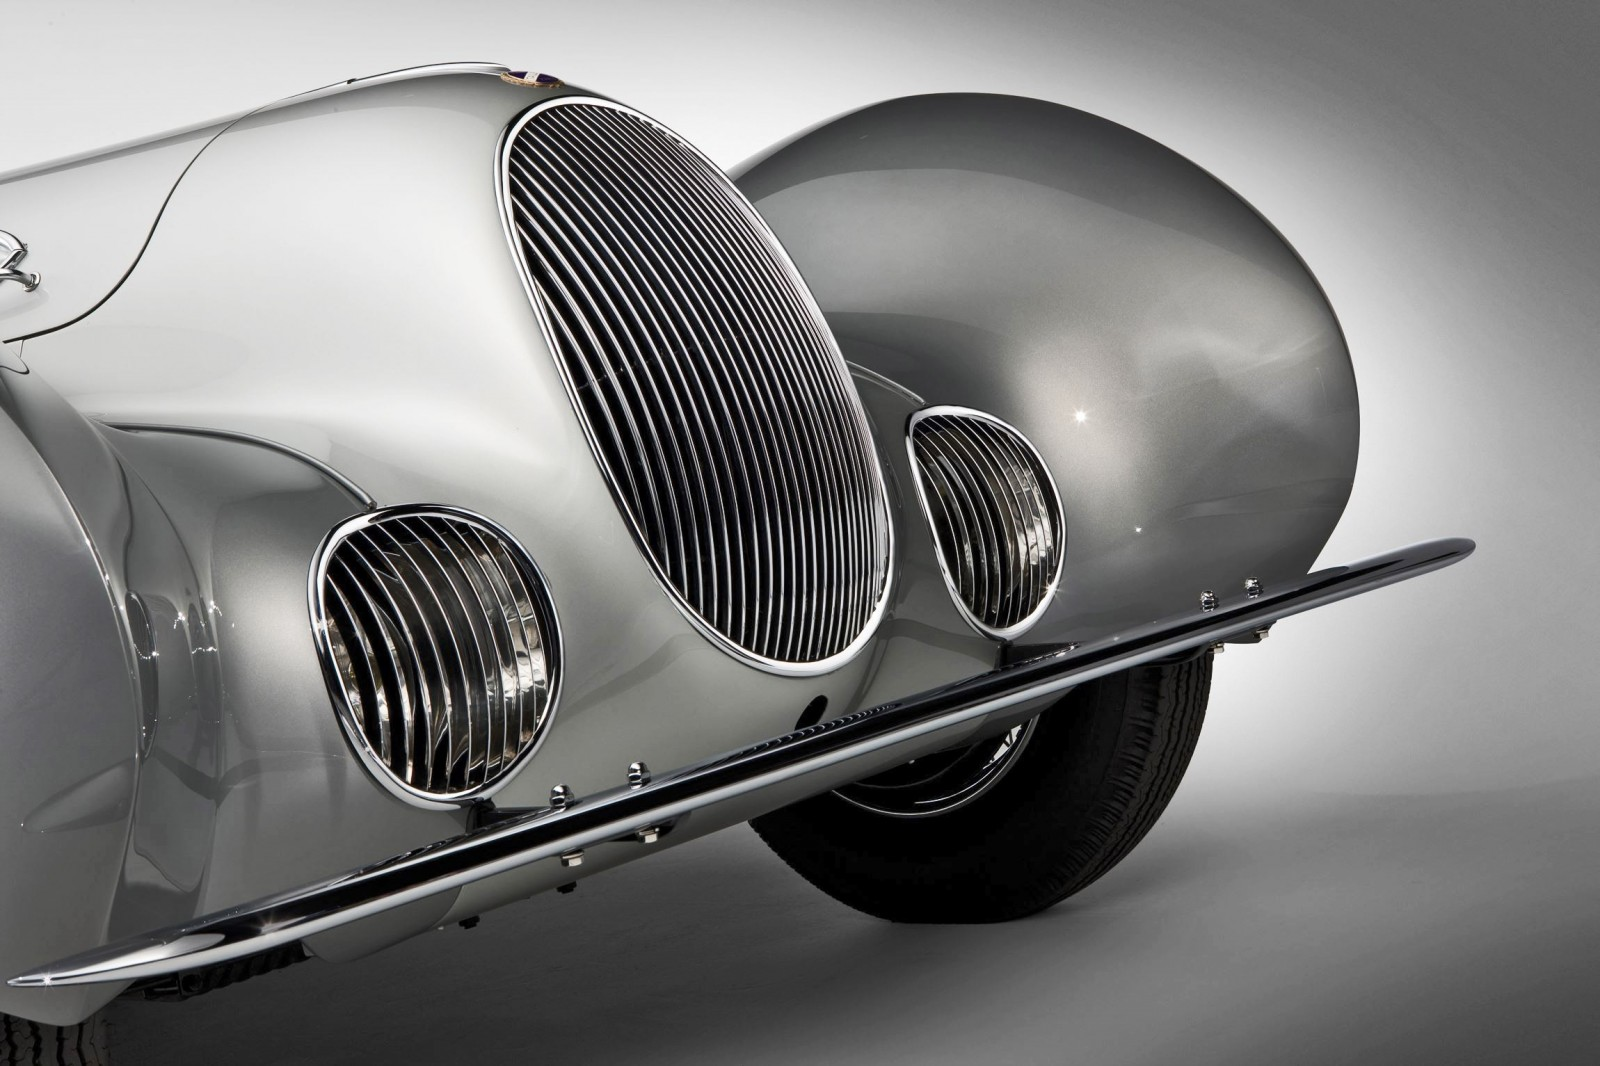 1938 Talbot-Lago T150-C SuperSport Teardrop Coupe 13